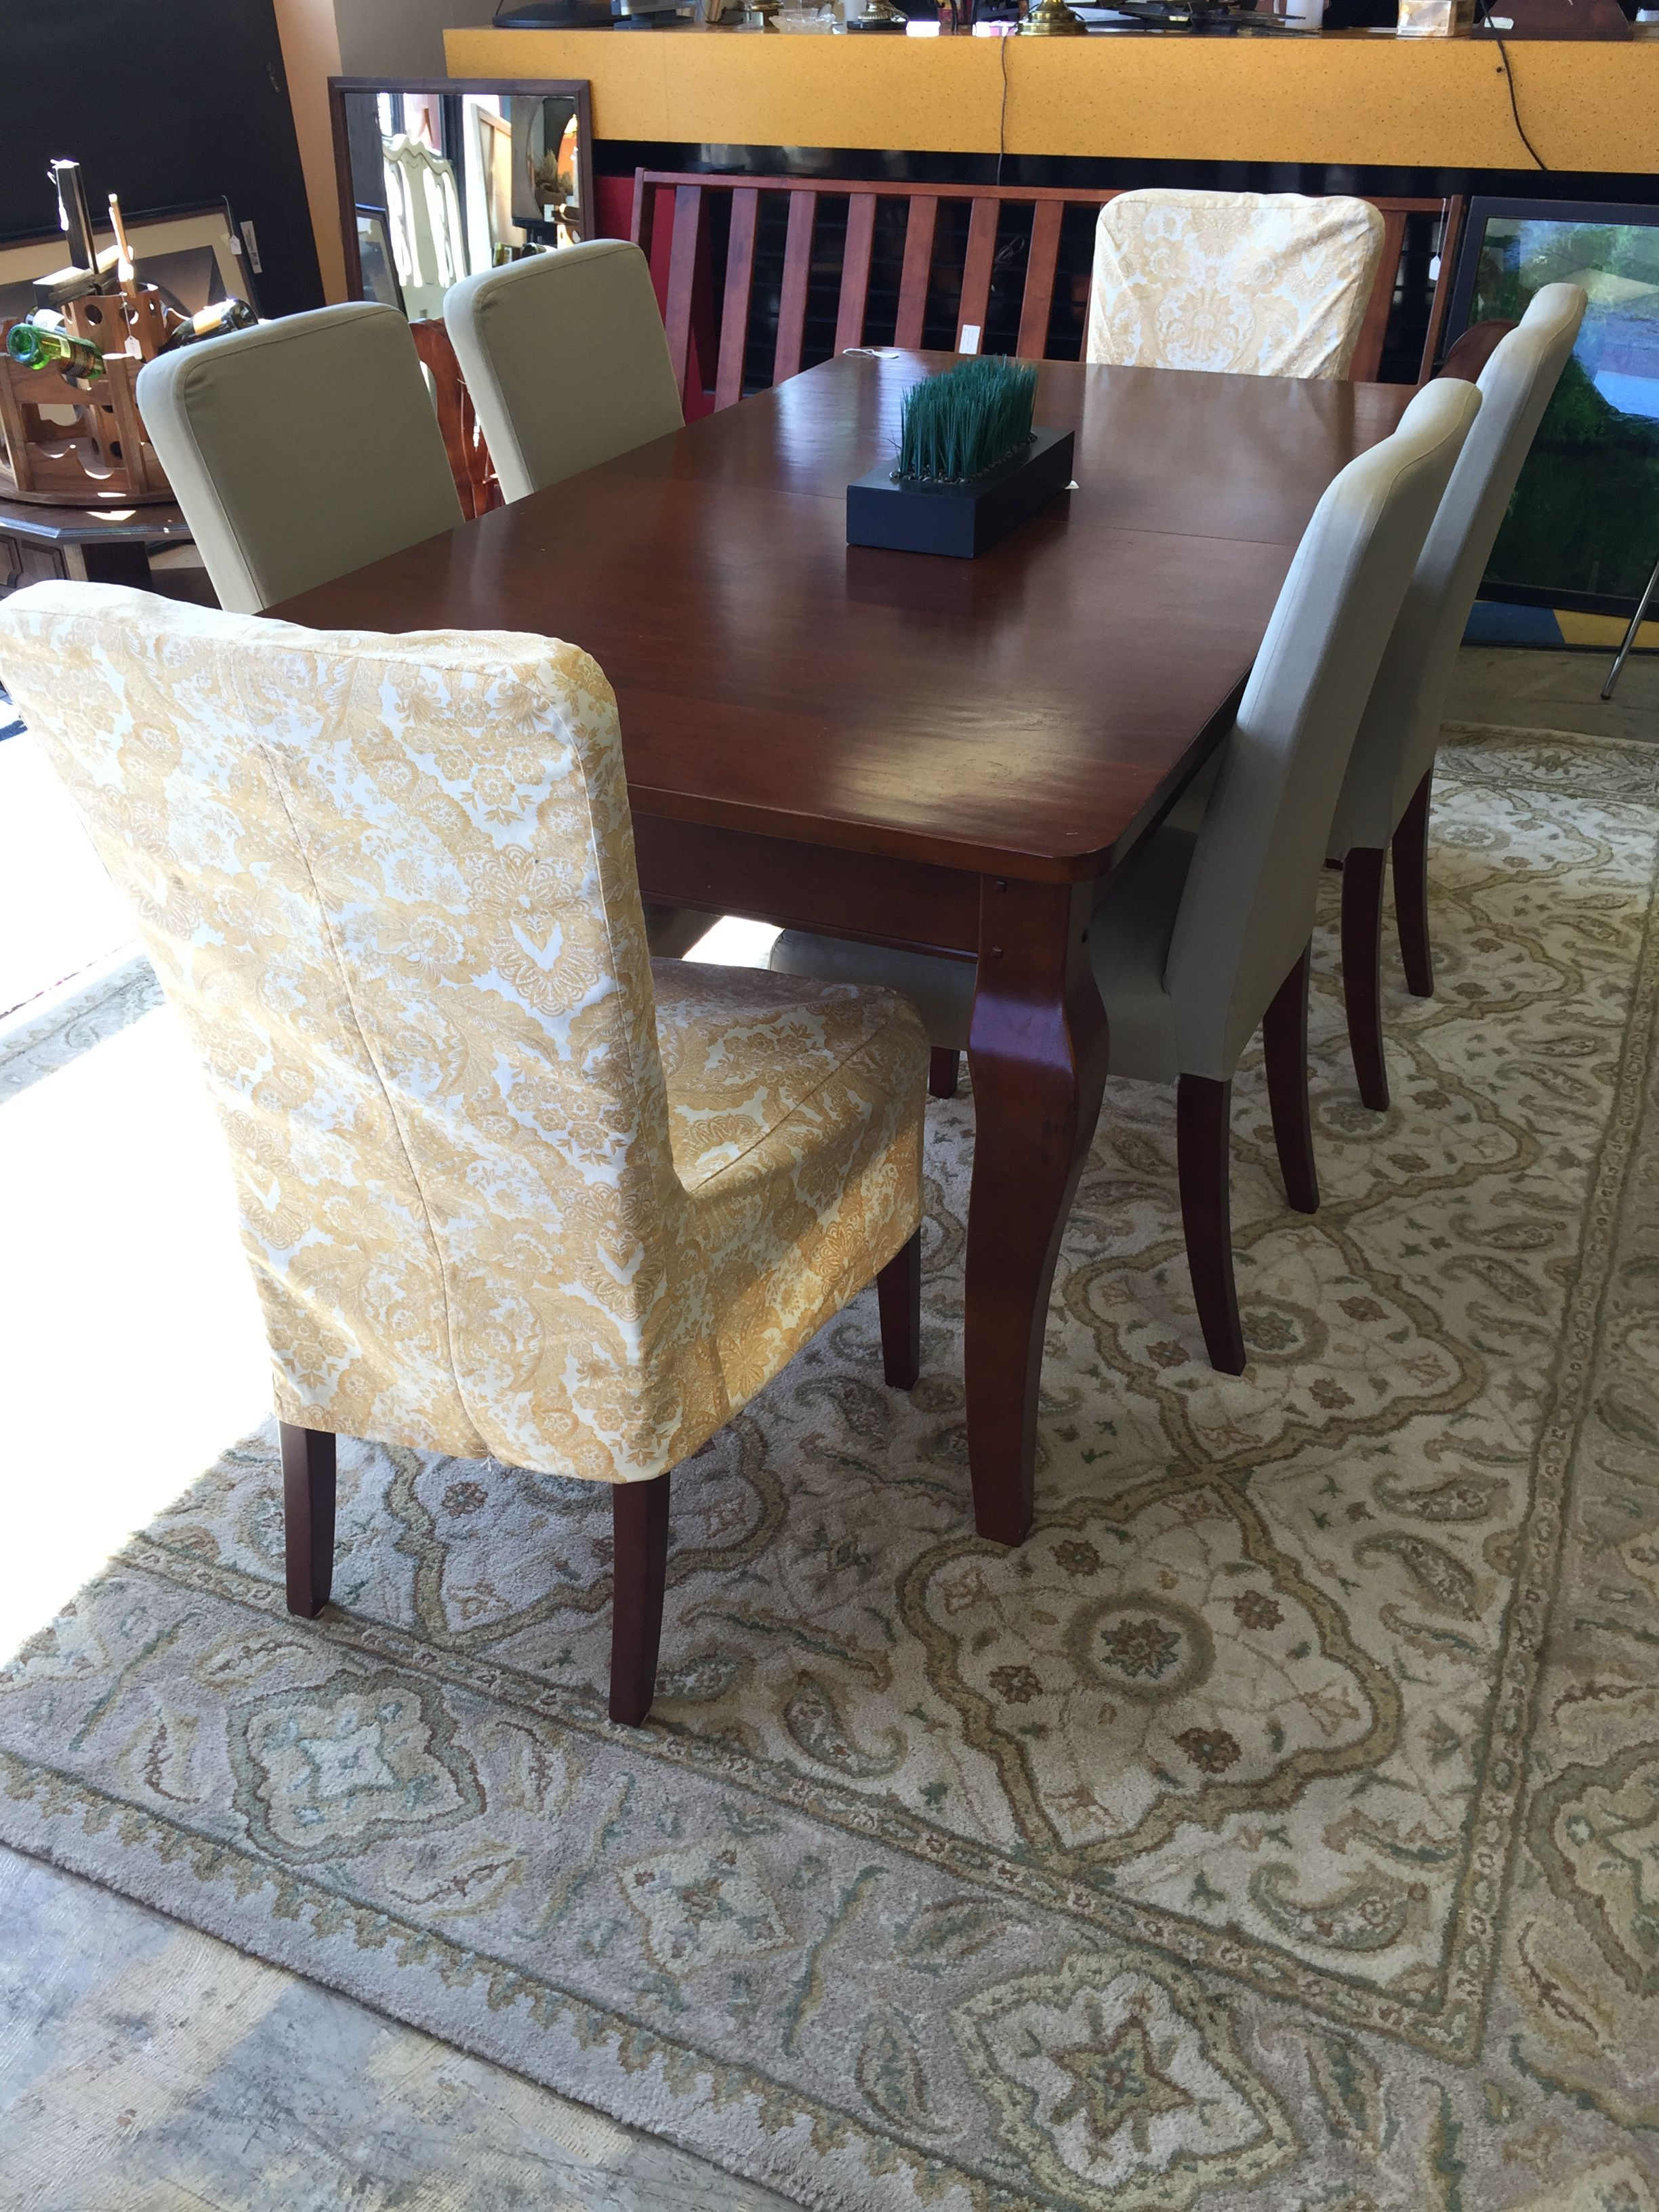 Pottery Barn Table With Six Chairs And Six Yellow Designed Chair